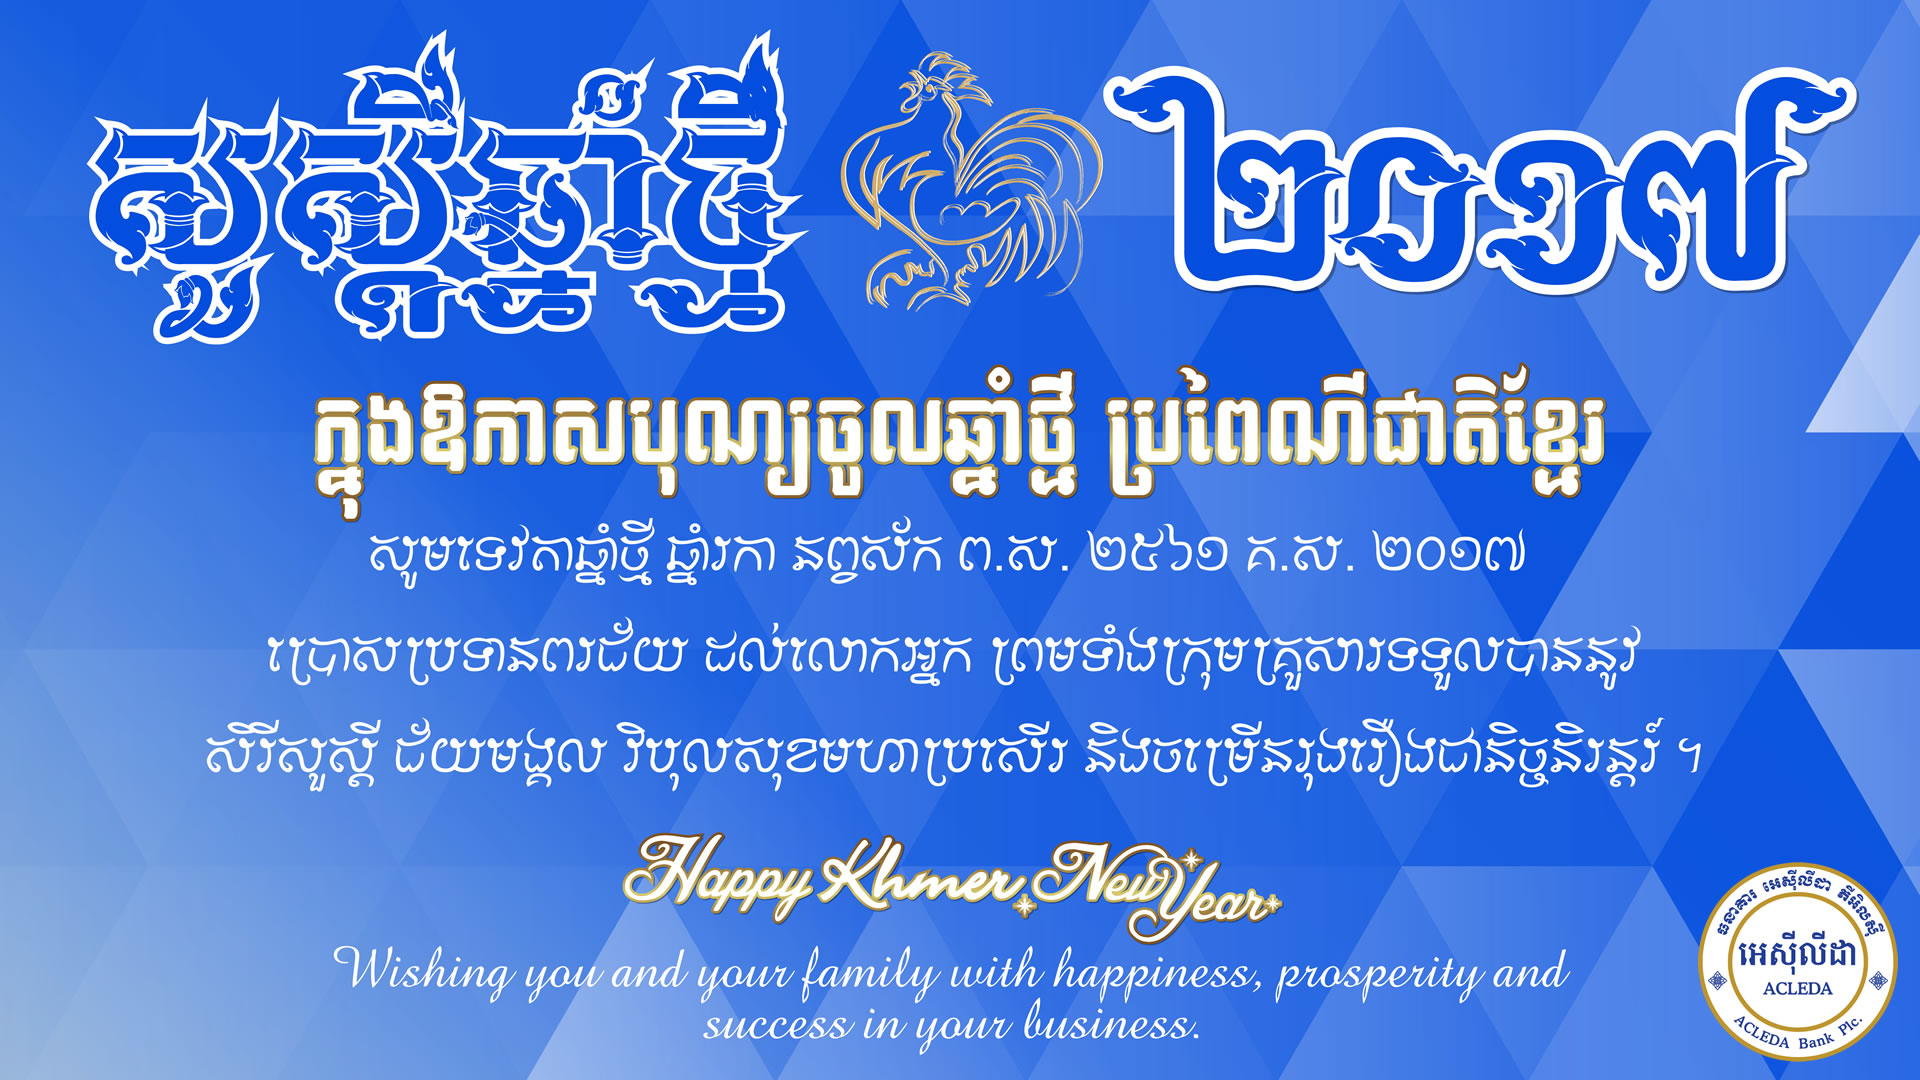 khmer new year day